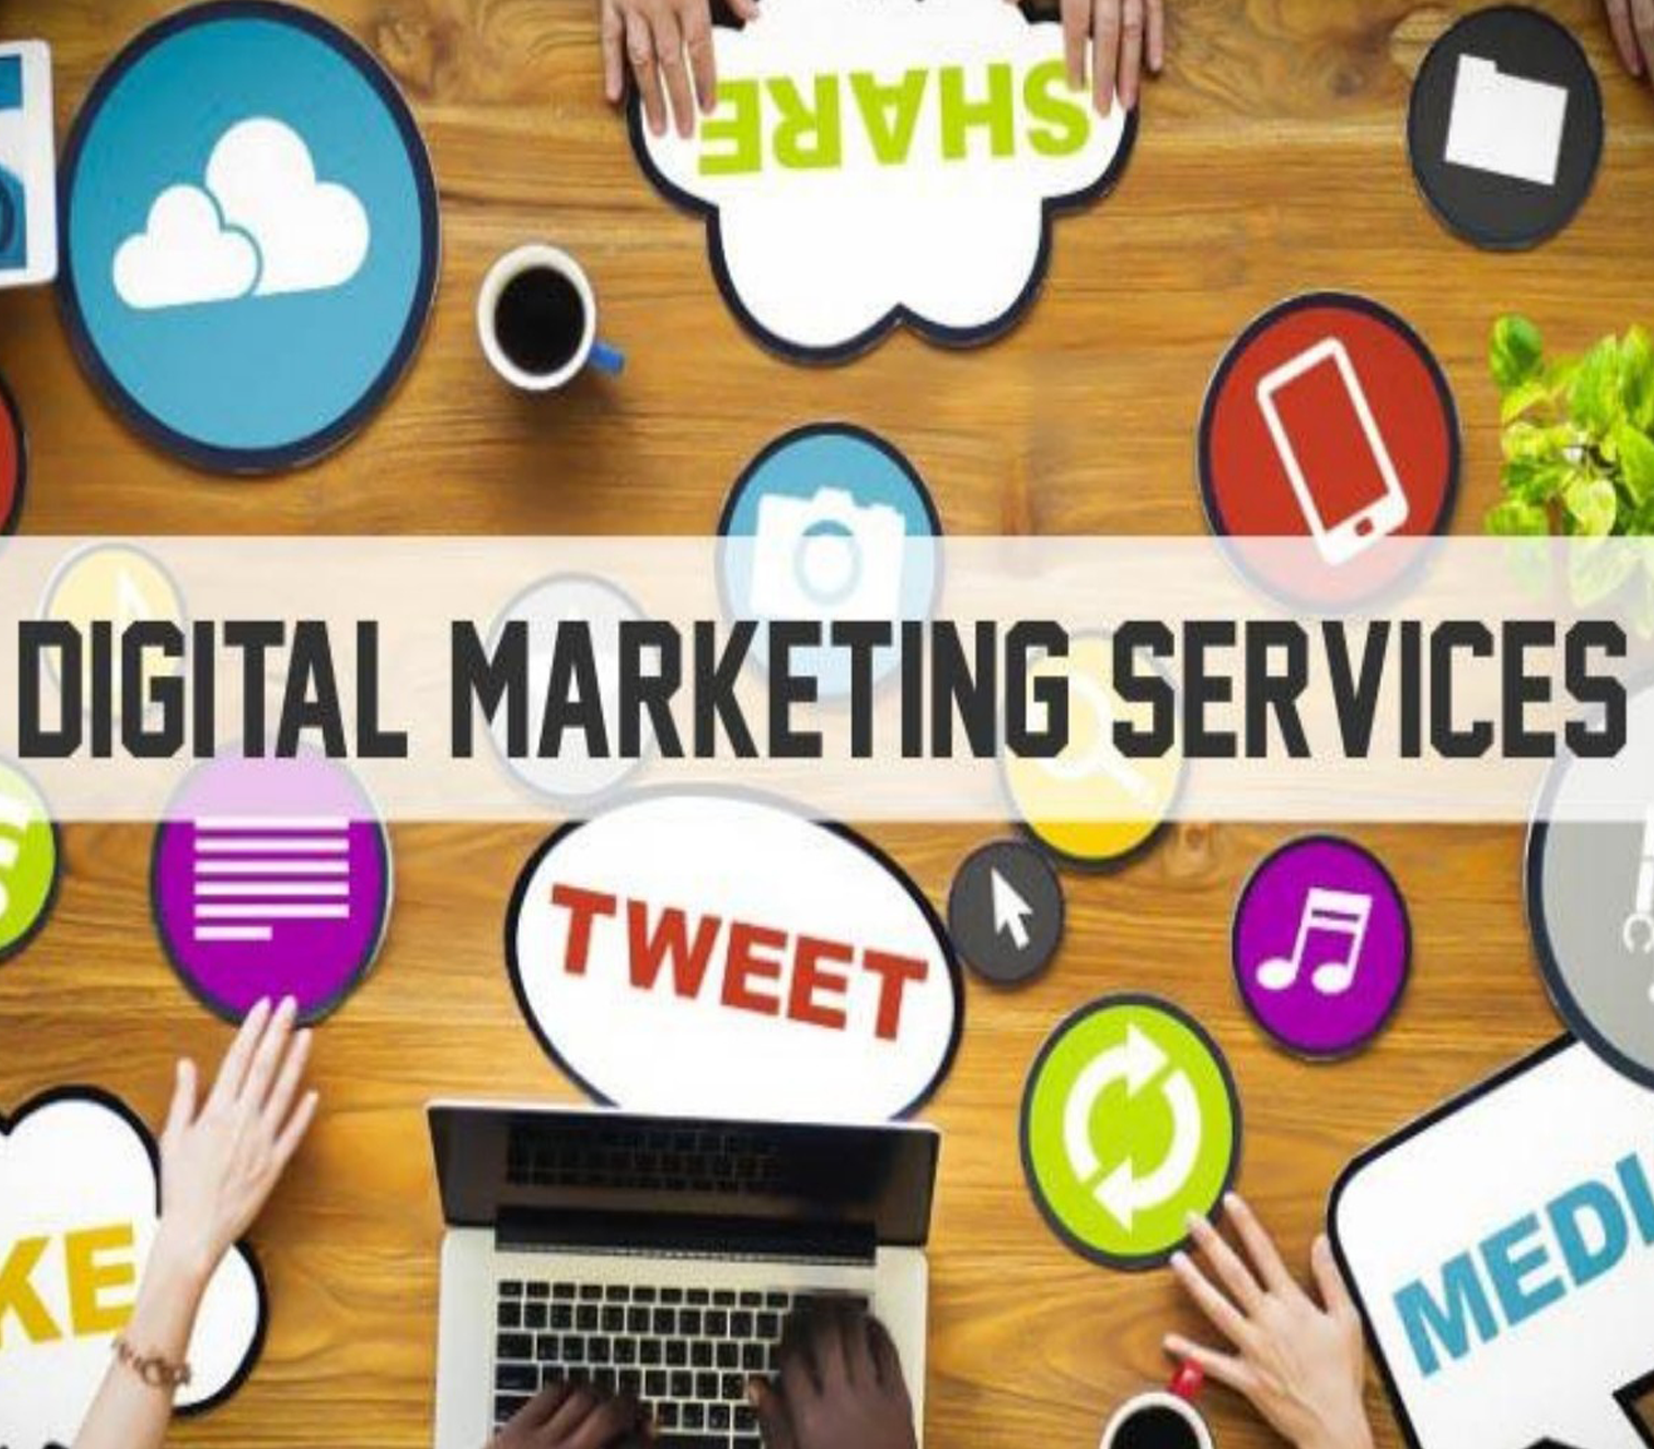 Digital Marketing Services Agency in India